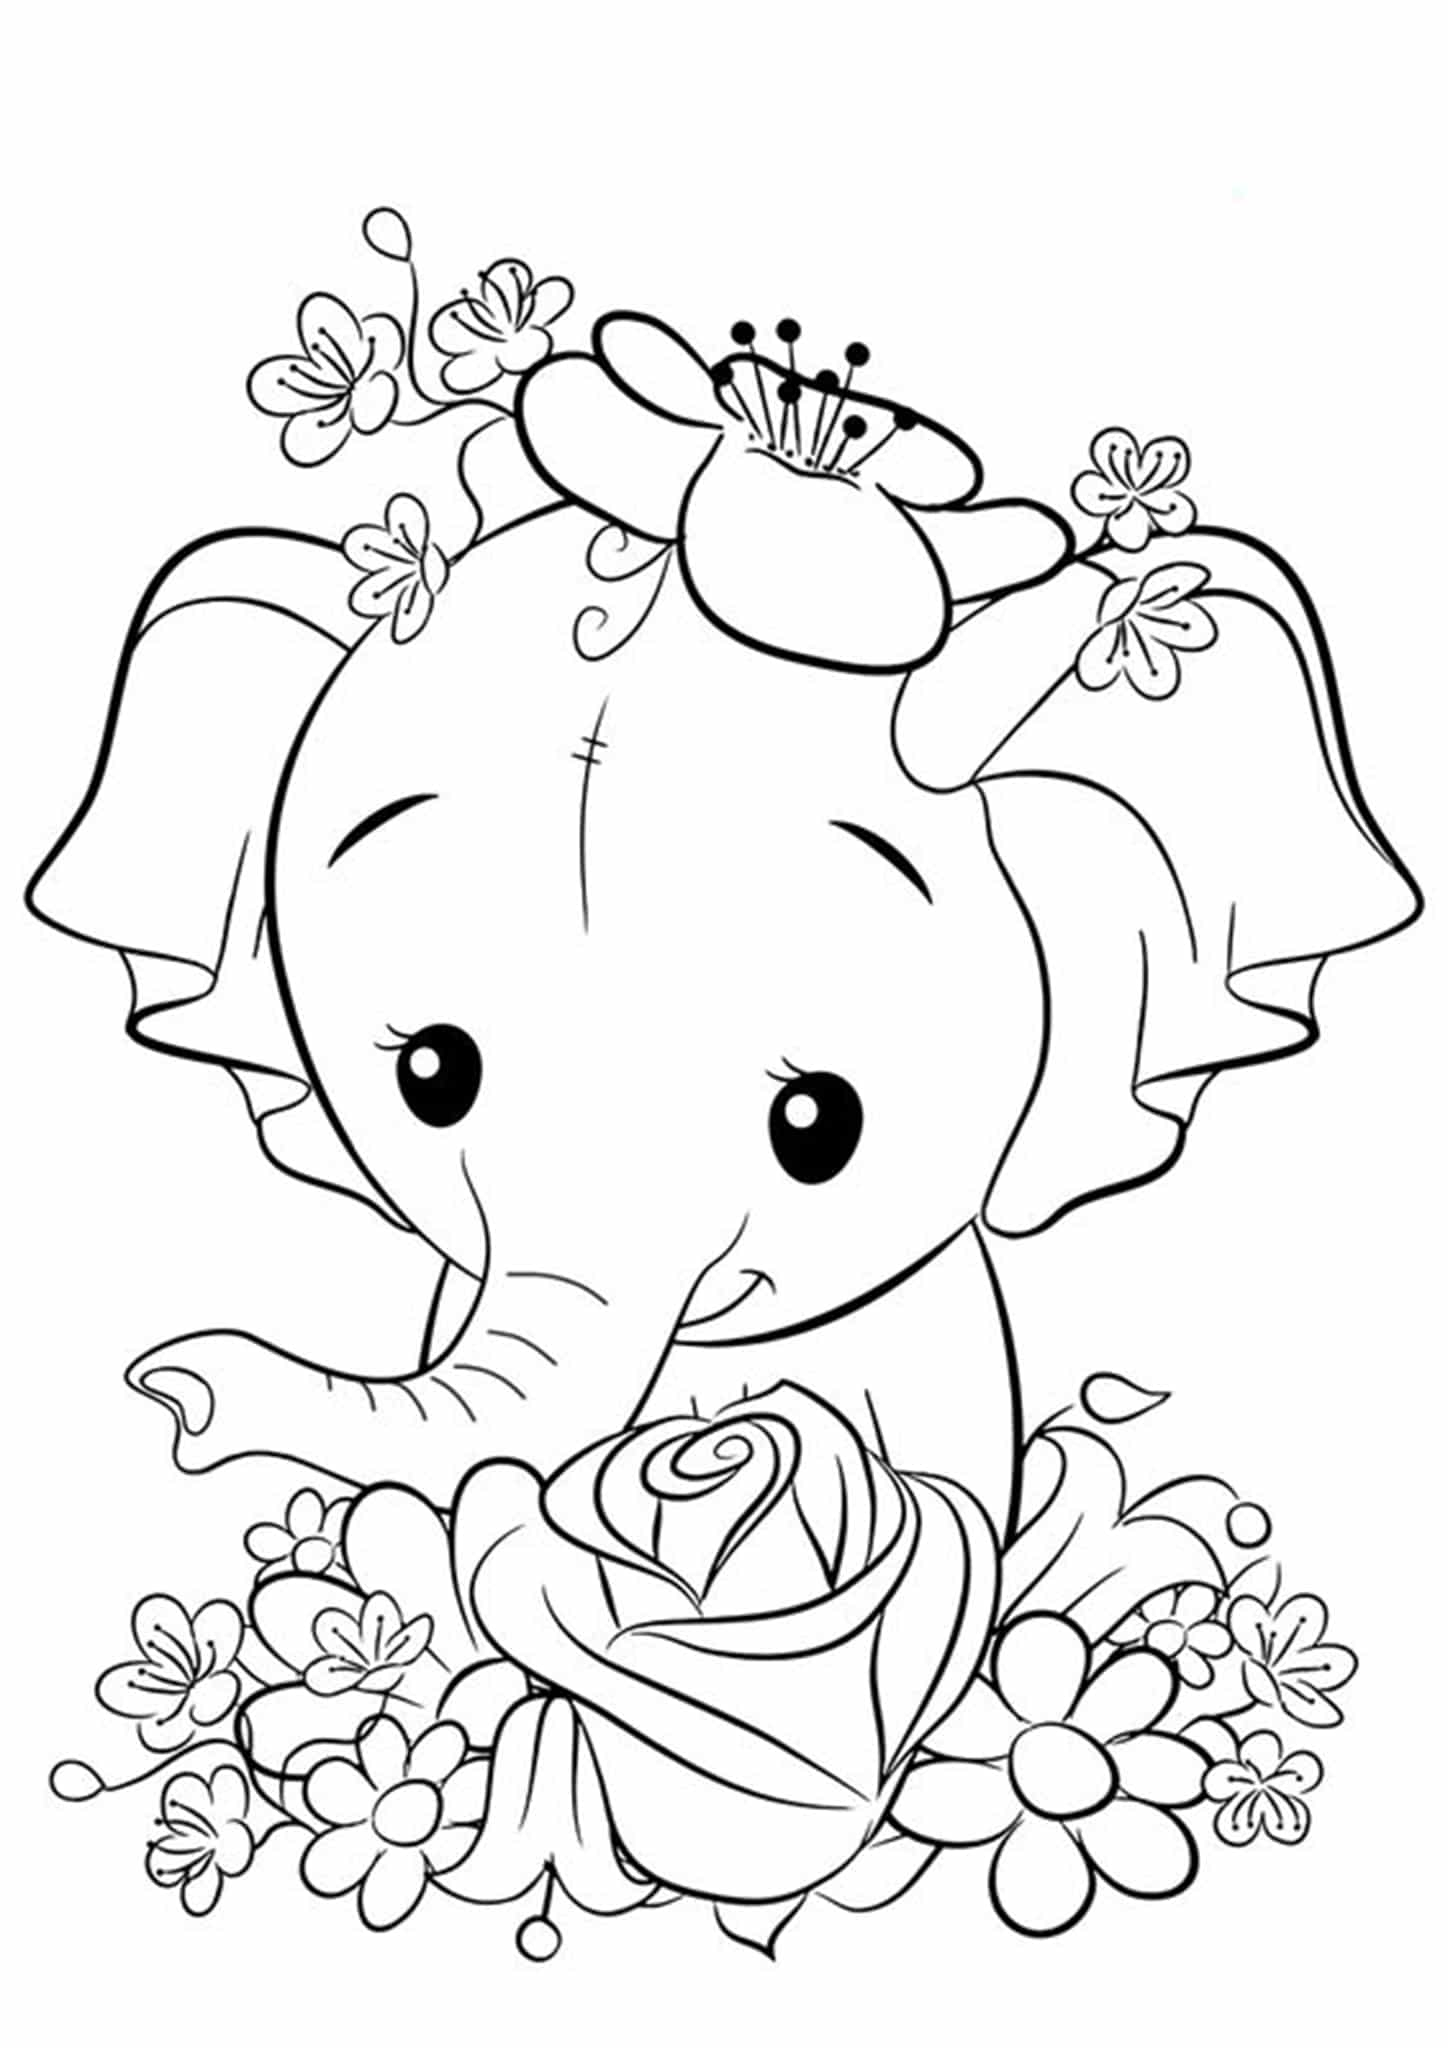 simple elephant coloring page coloring pages of elephants download and print for free page coloring elephant simple